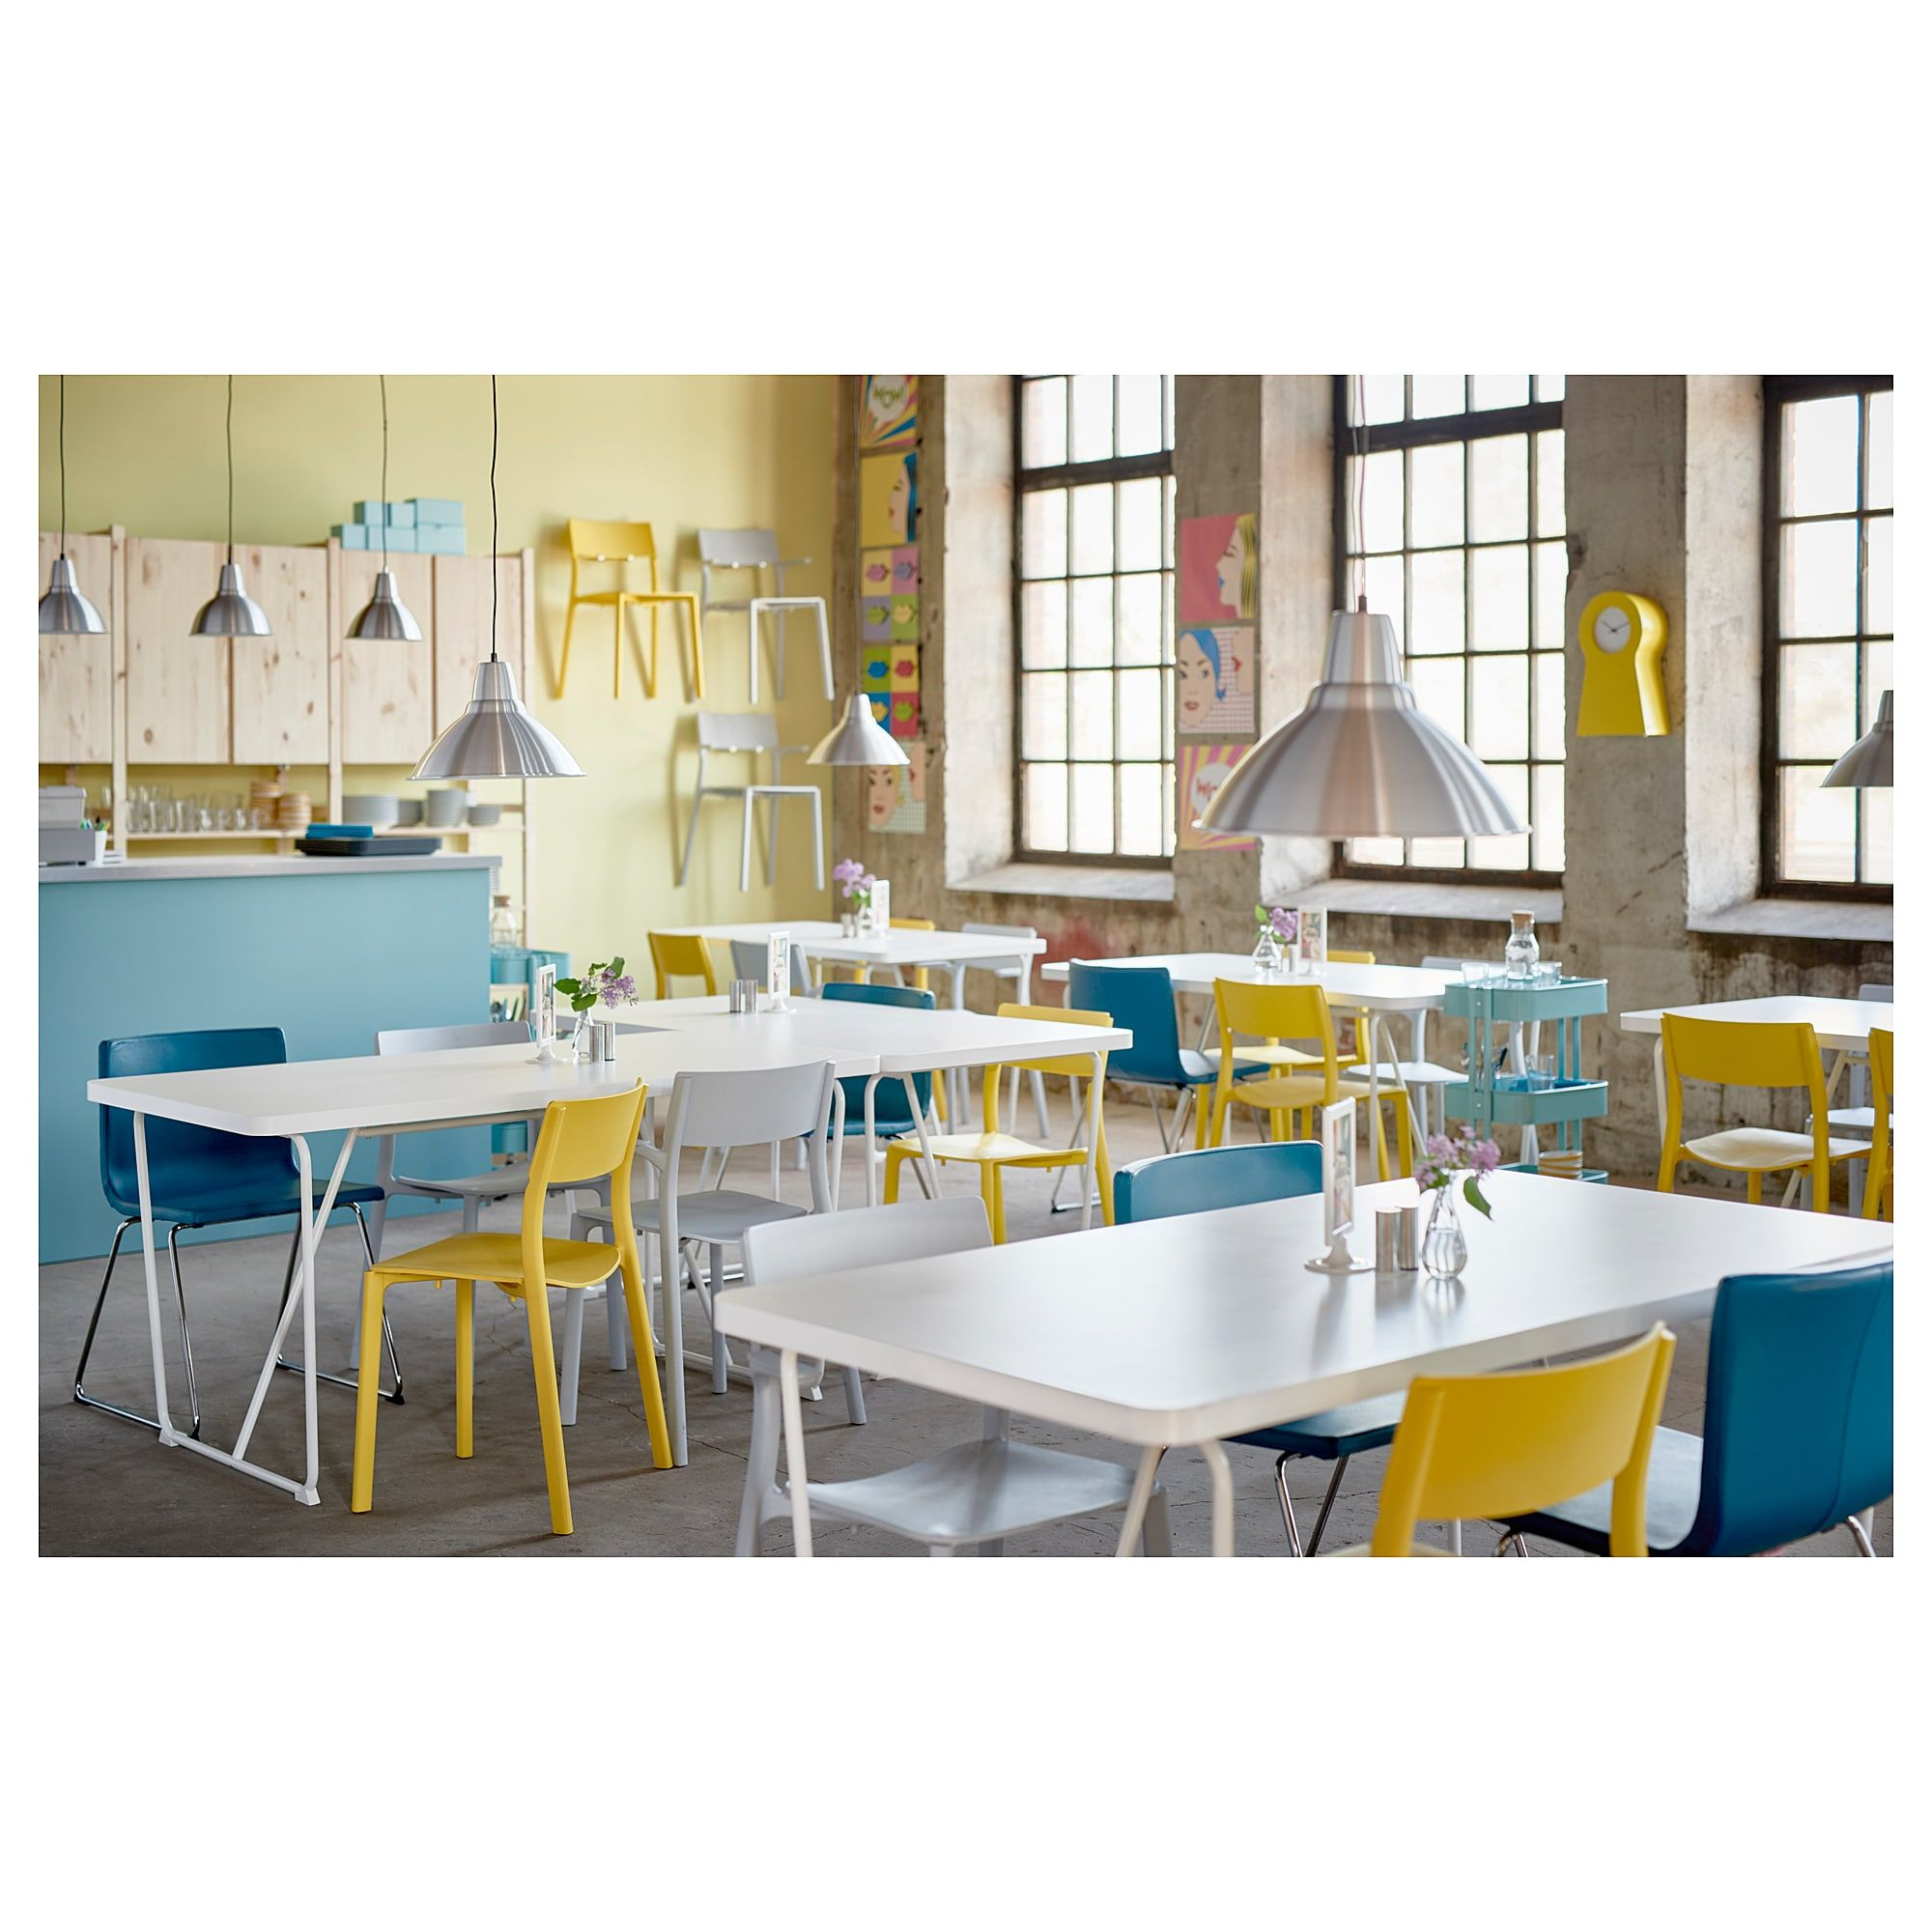 Ikea Janinge Chair Yellow In 2019 Cafe Concept Ikea